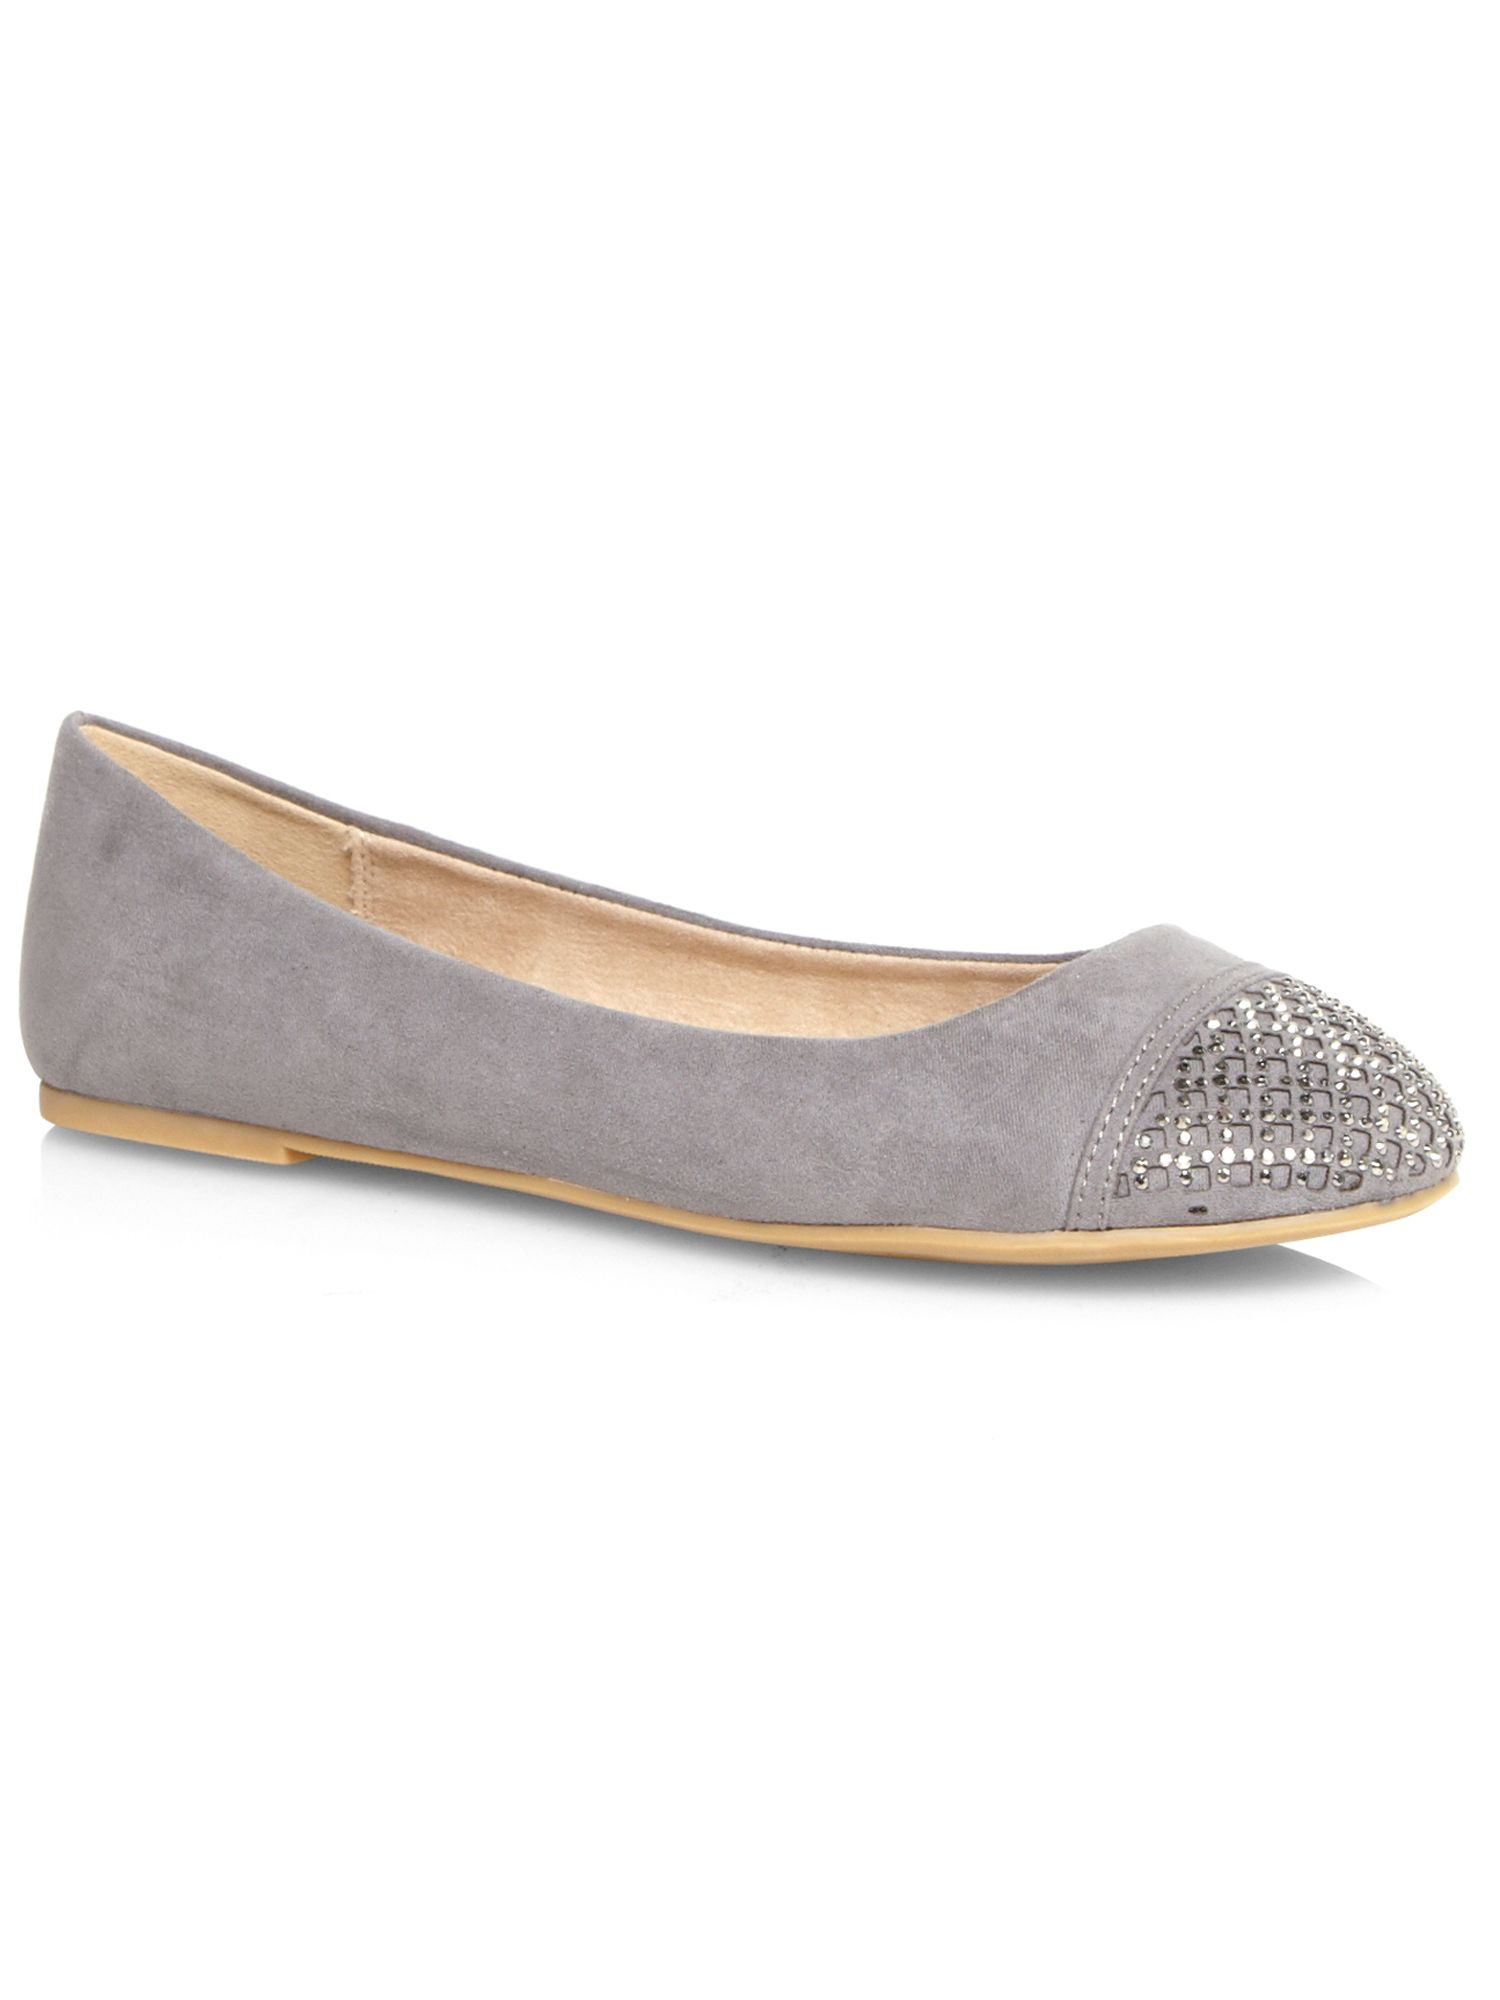 Grey beaded toe pump